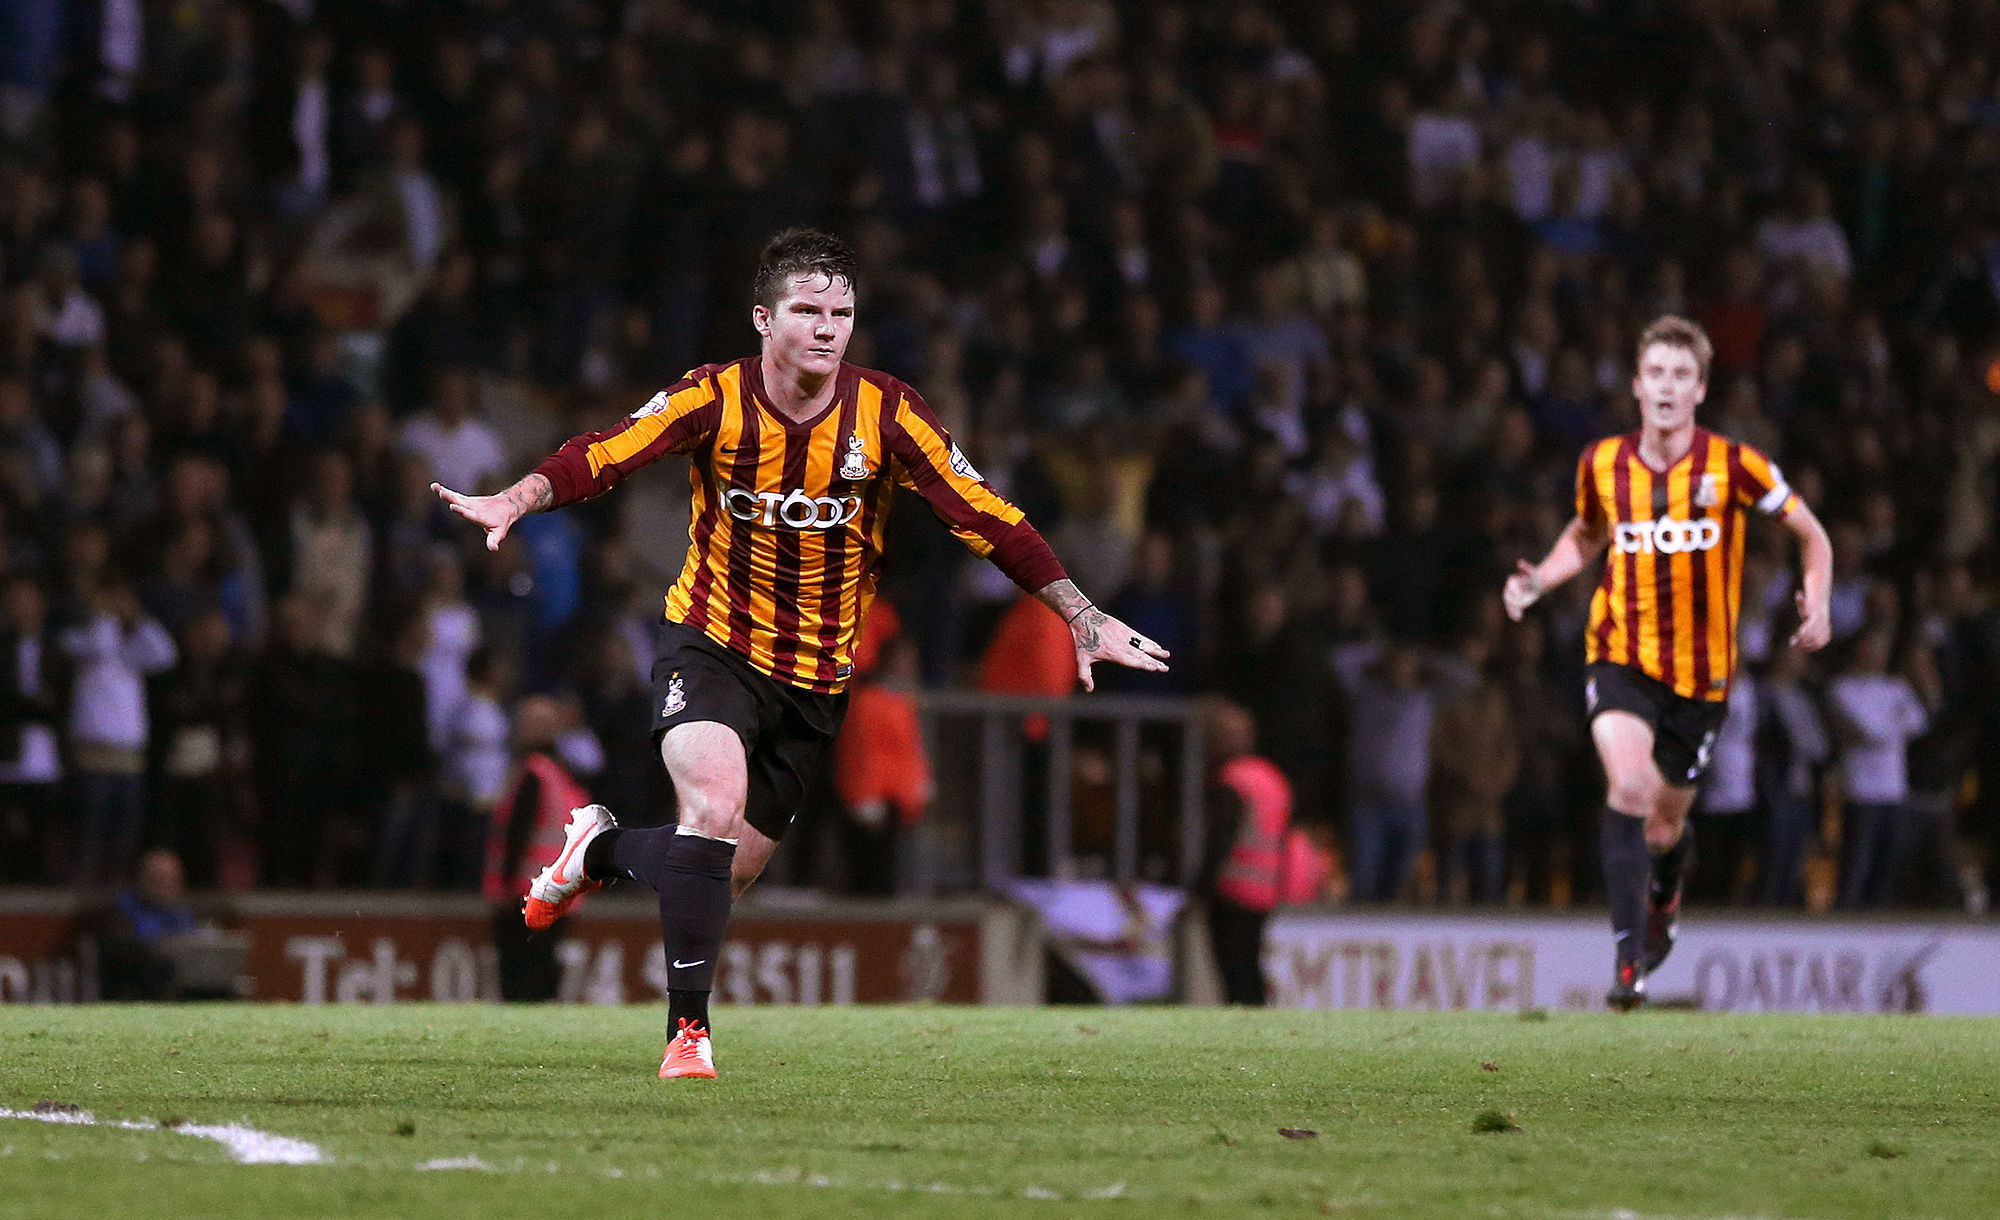 Coach from junior days Knott surprised by Bradford City midfielder's Valley Parade thunderbolt